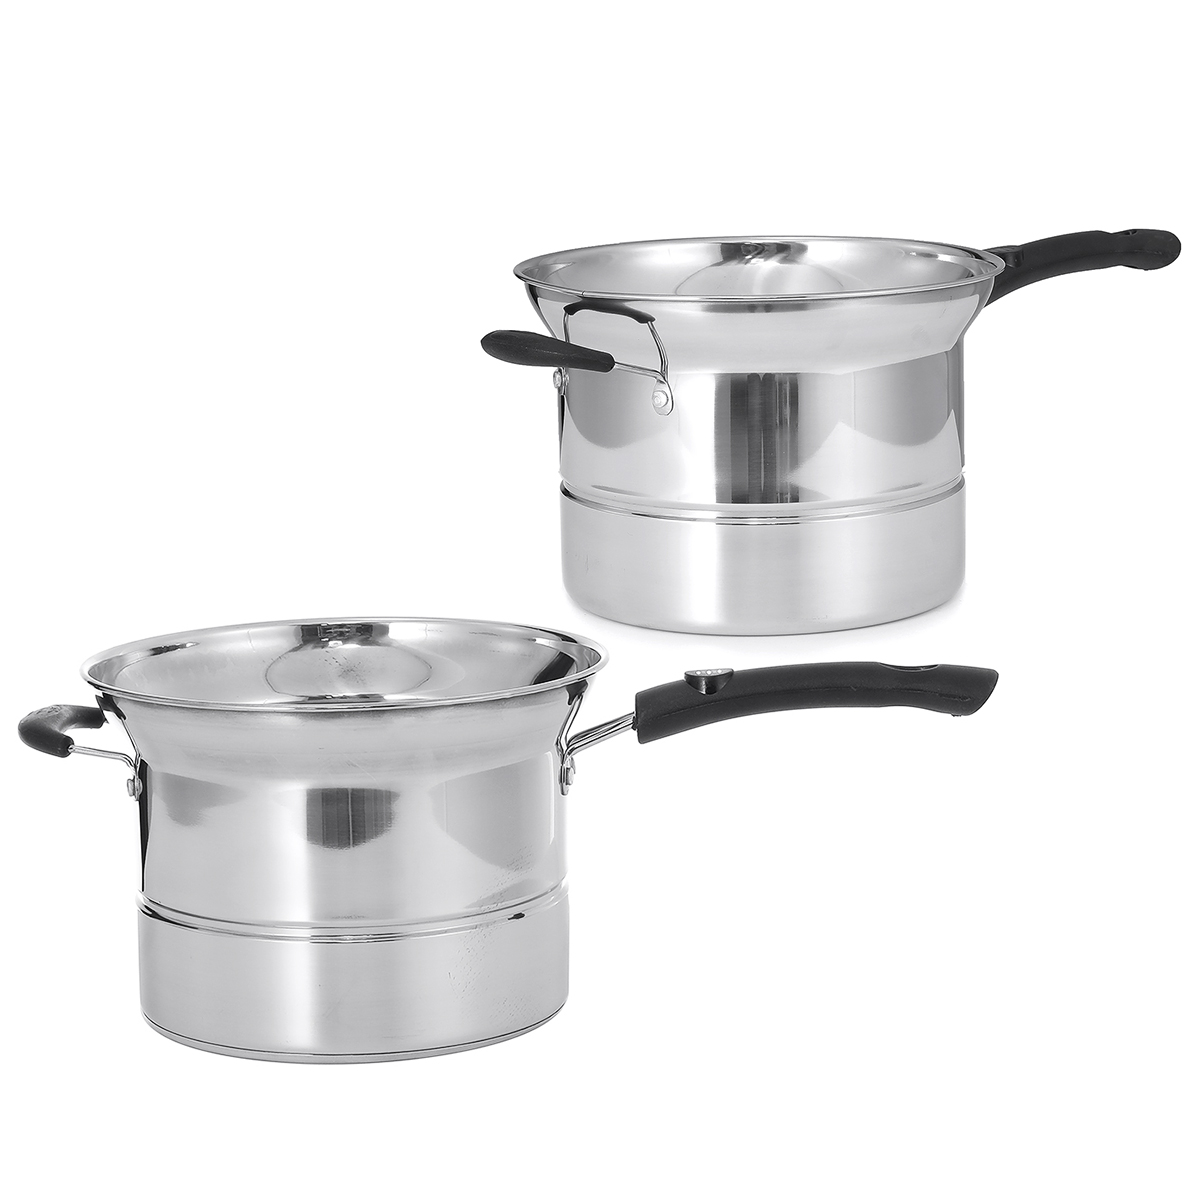 22cm Stainless Steel Pot Soup Pot Milk Pot With Handle Instant Noodle Pot Cooking Baby Foods for Kitchen Cookware